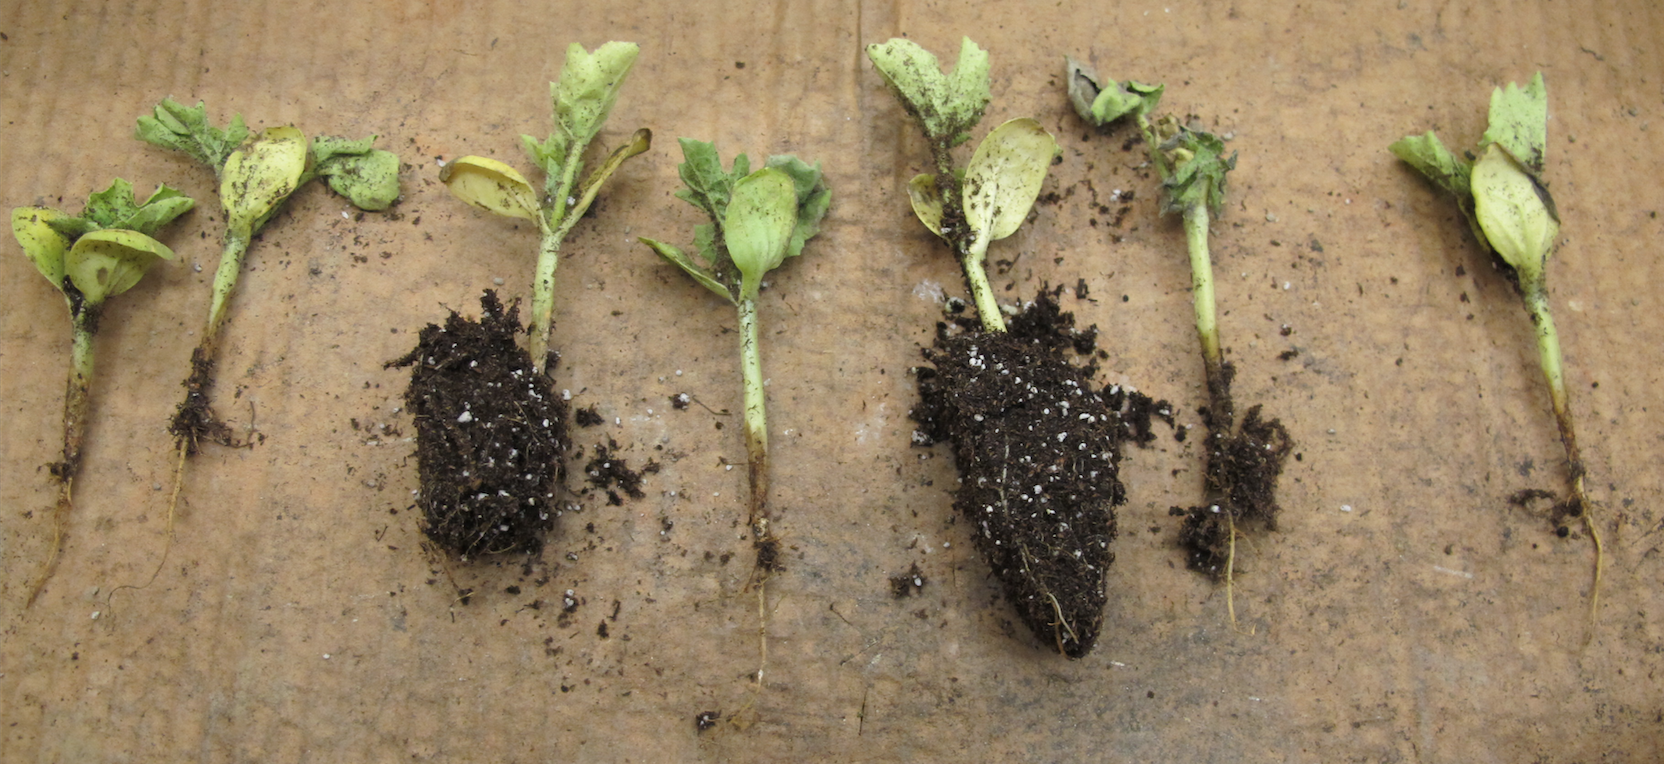 Fig. 1: water soaked lesions on crowns of watermelon seedlings infected with gummy stem blight